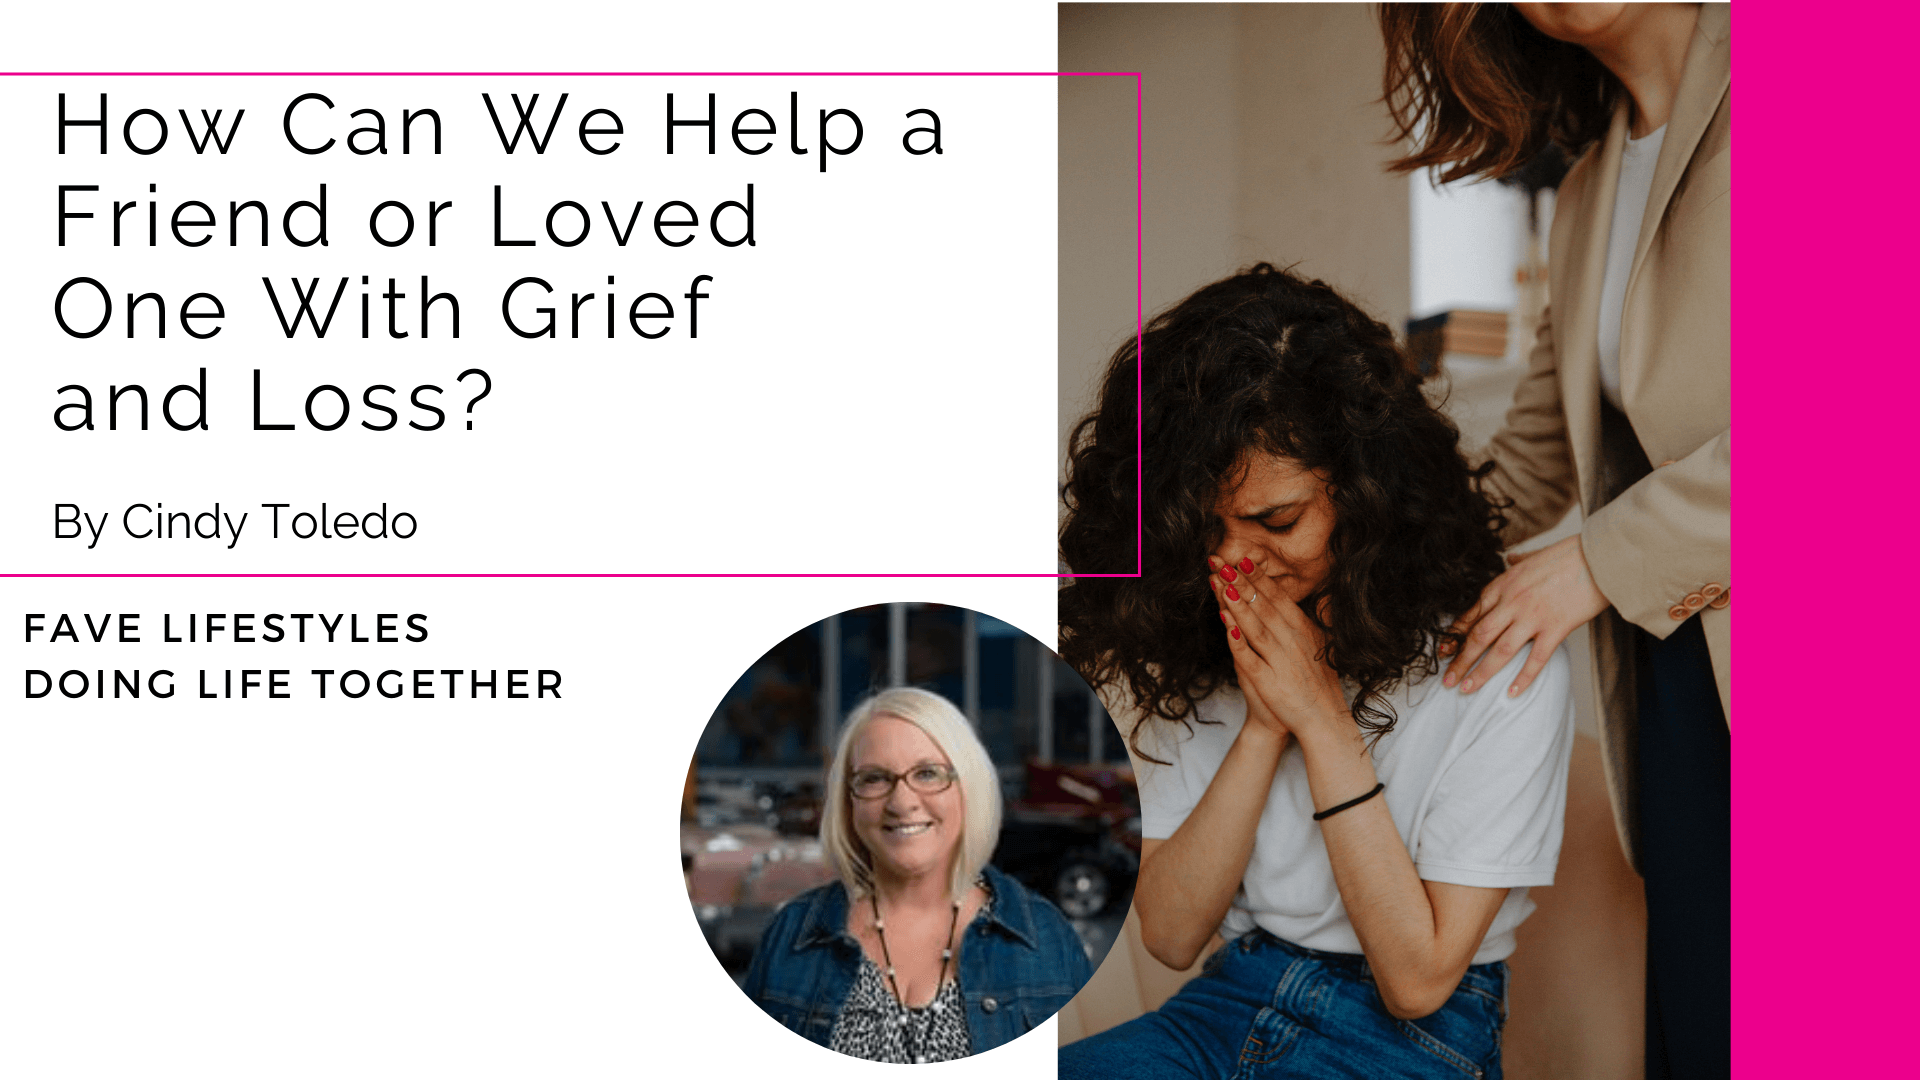 How Can We Help a Friend or Loved One in Grief and Loss